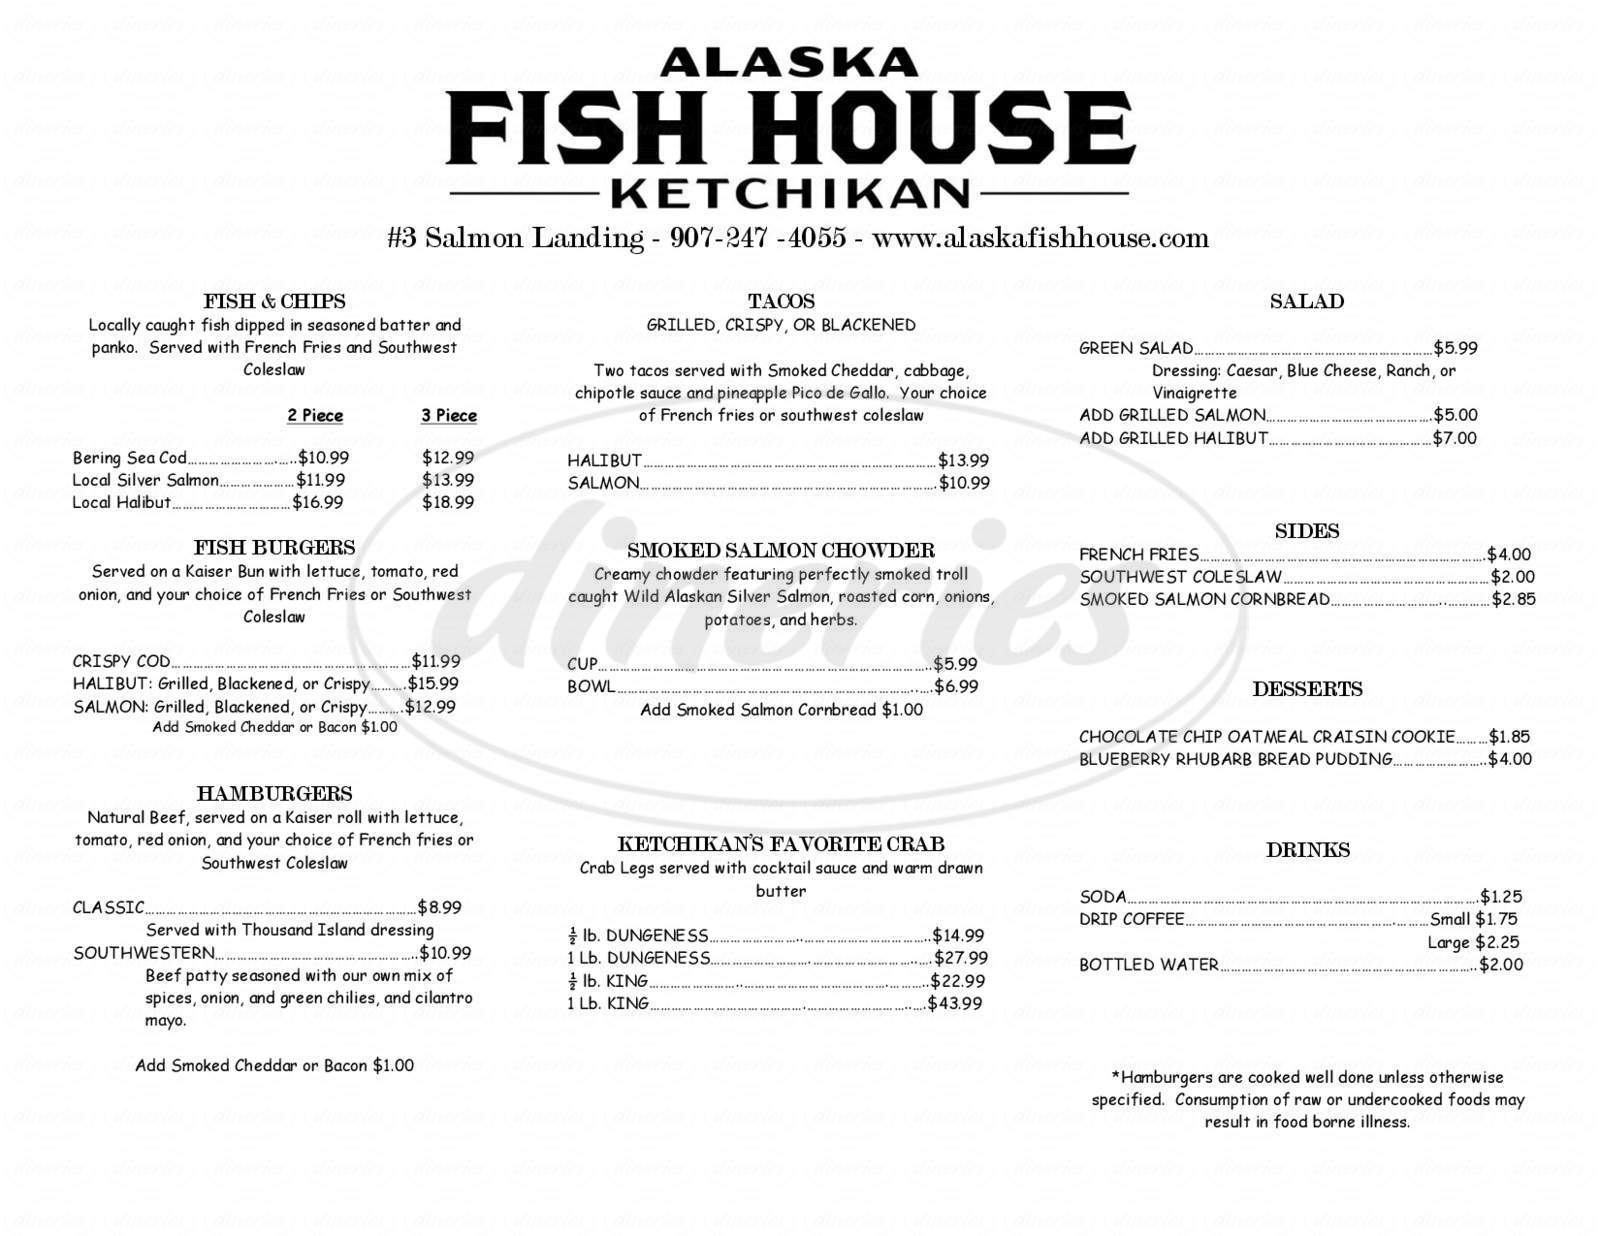 menu for Alaska Fish House